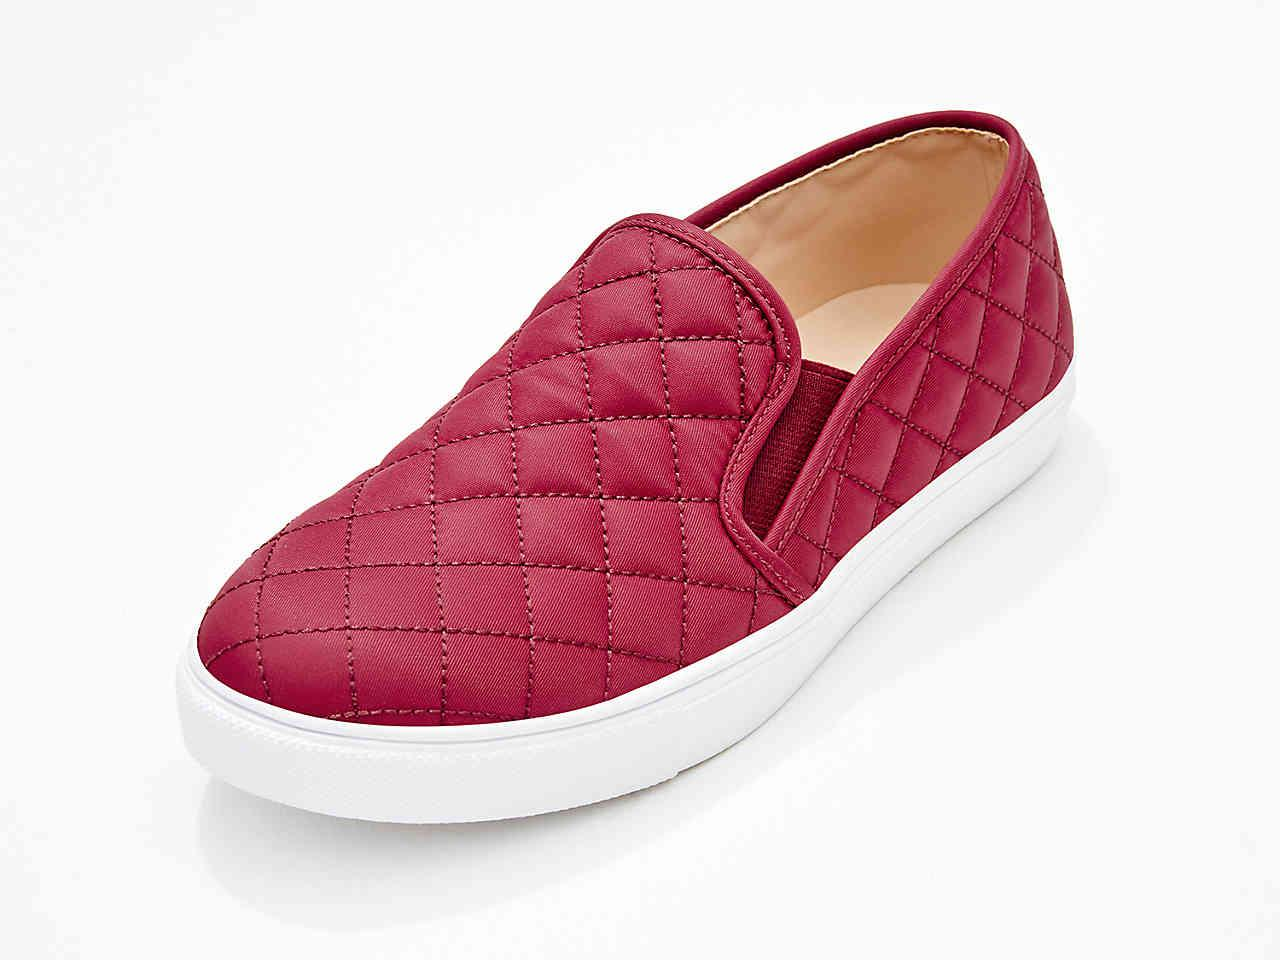 90976e32e074 Steve Madden - Red Ecentrcq Slip-on Sneaker - Lyst. View fullscreen